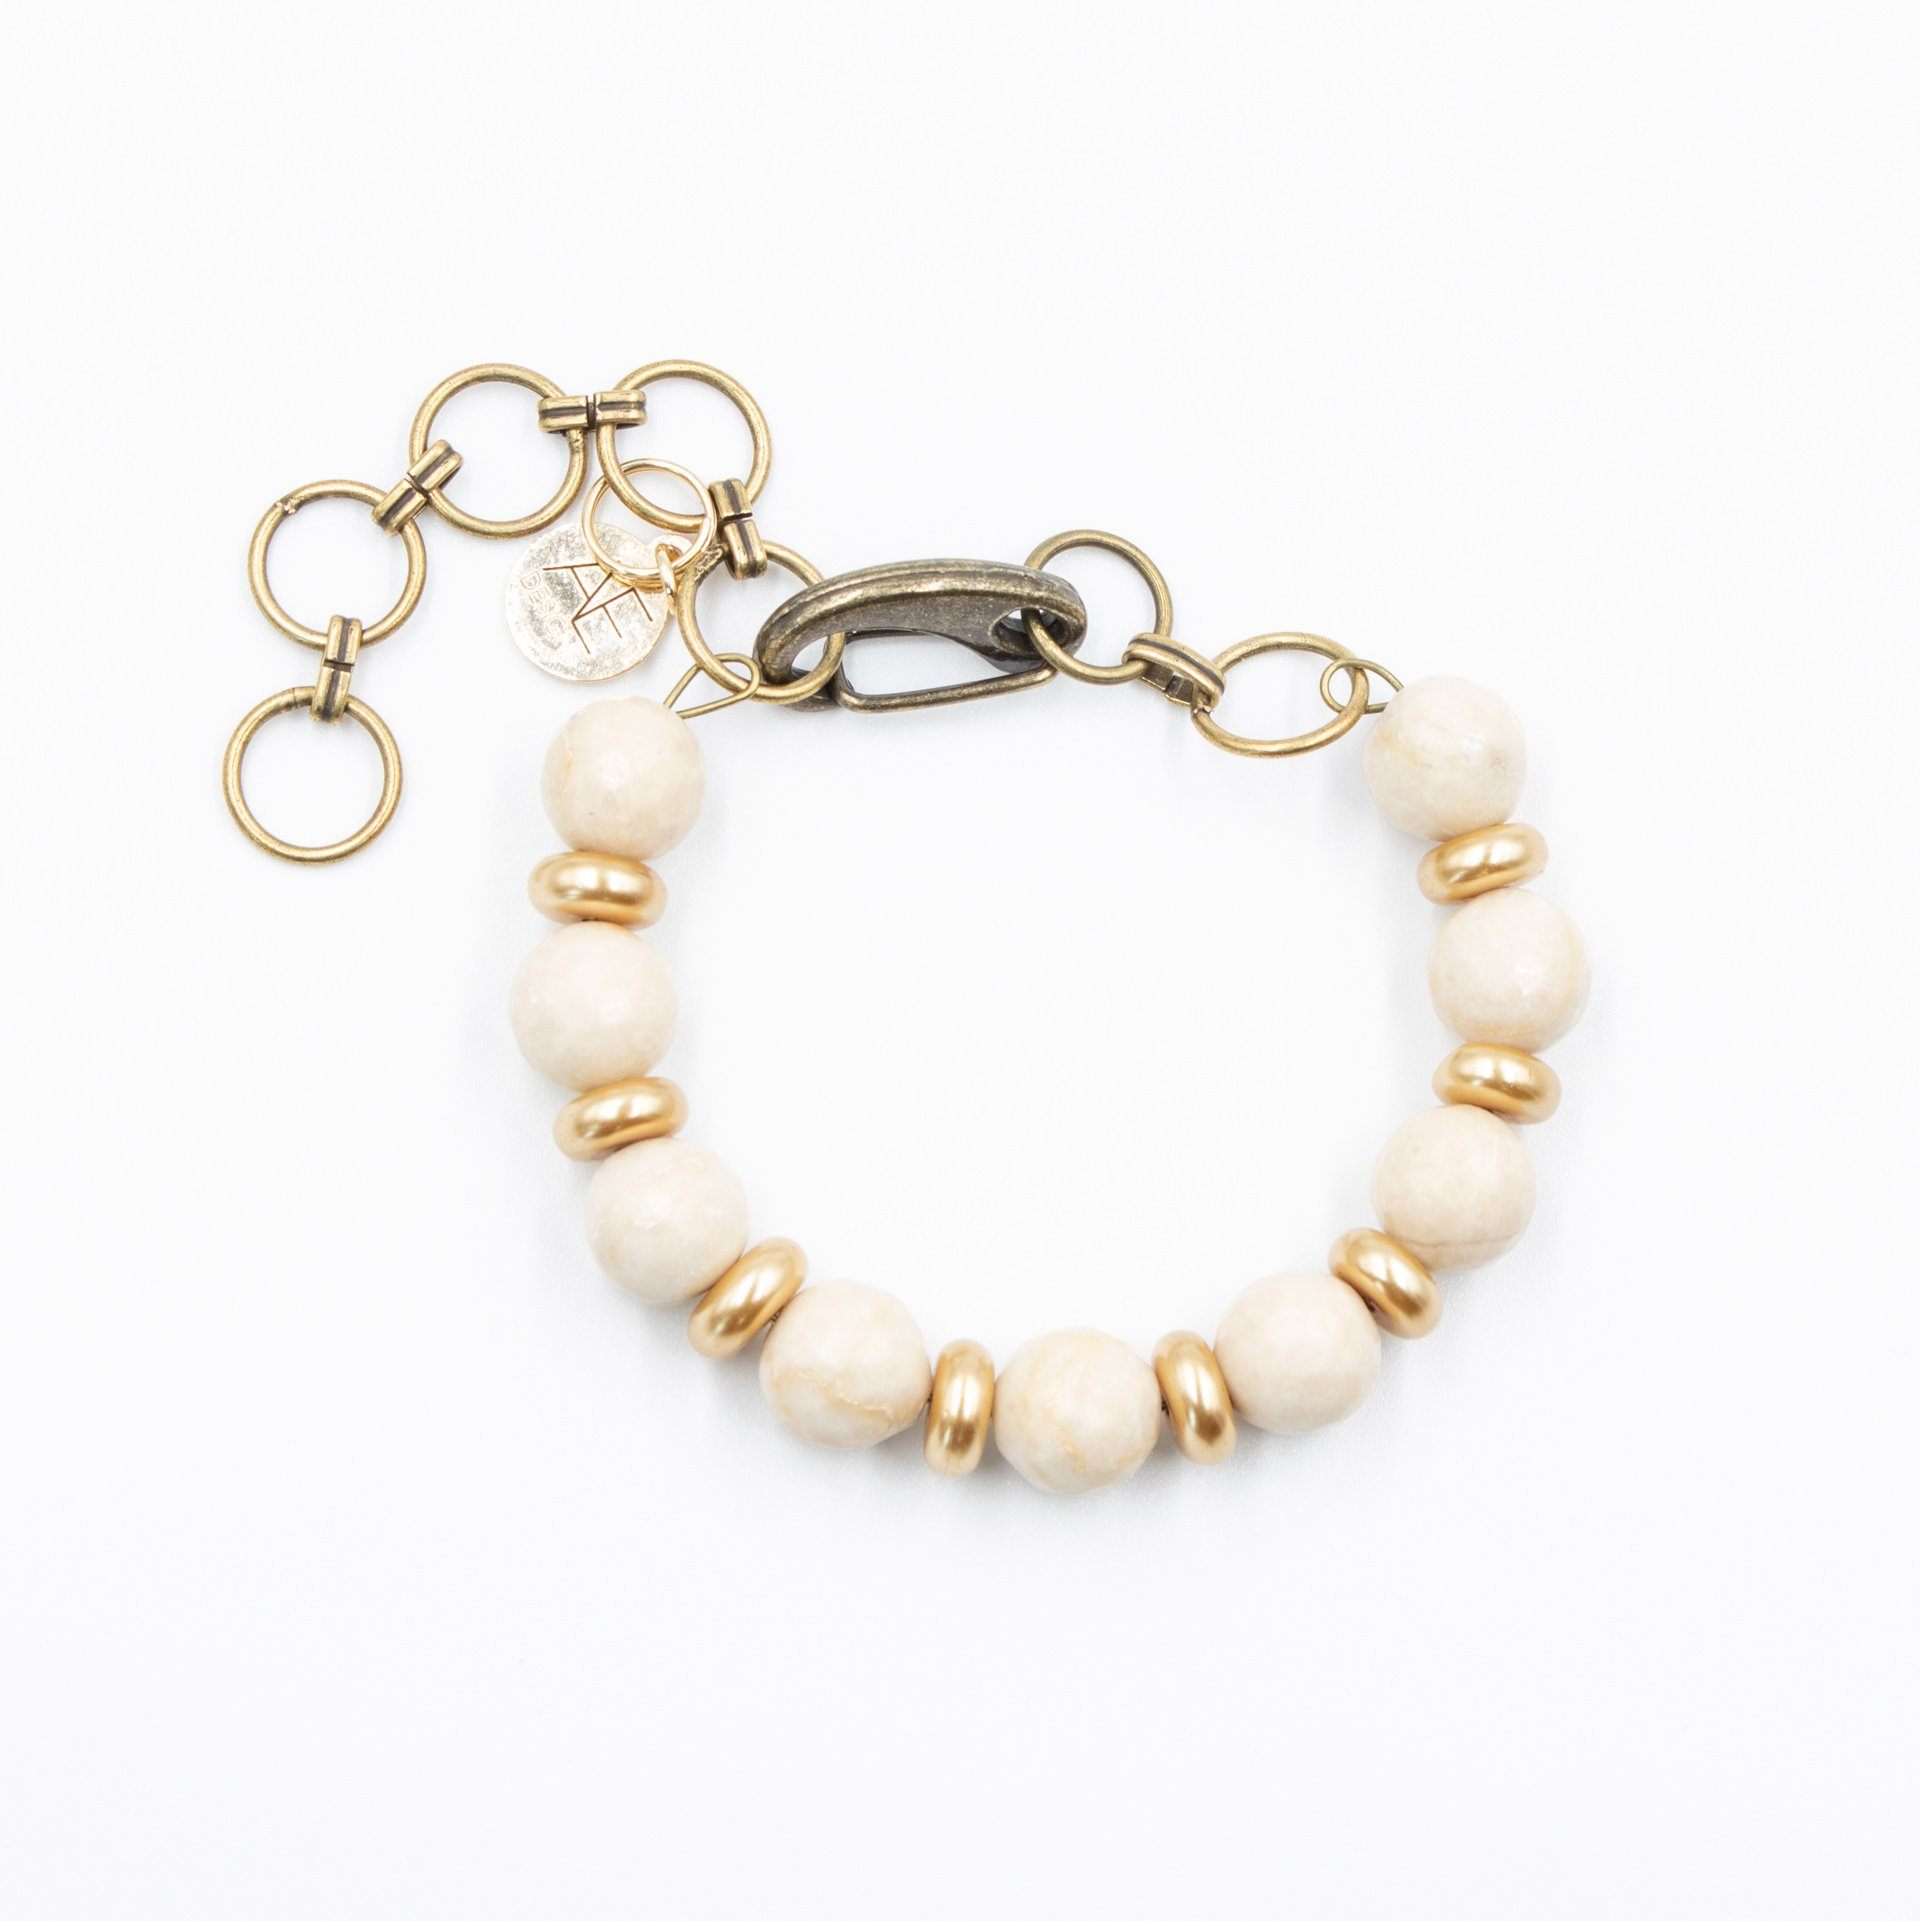 The Midi Bangle Bracelet in Ivory and Gold